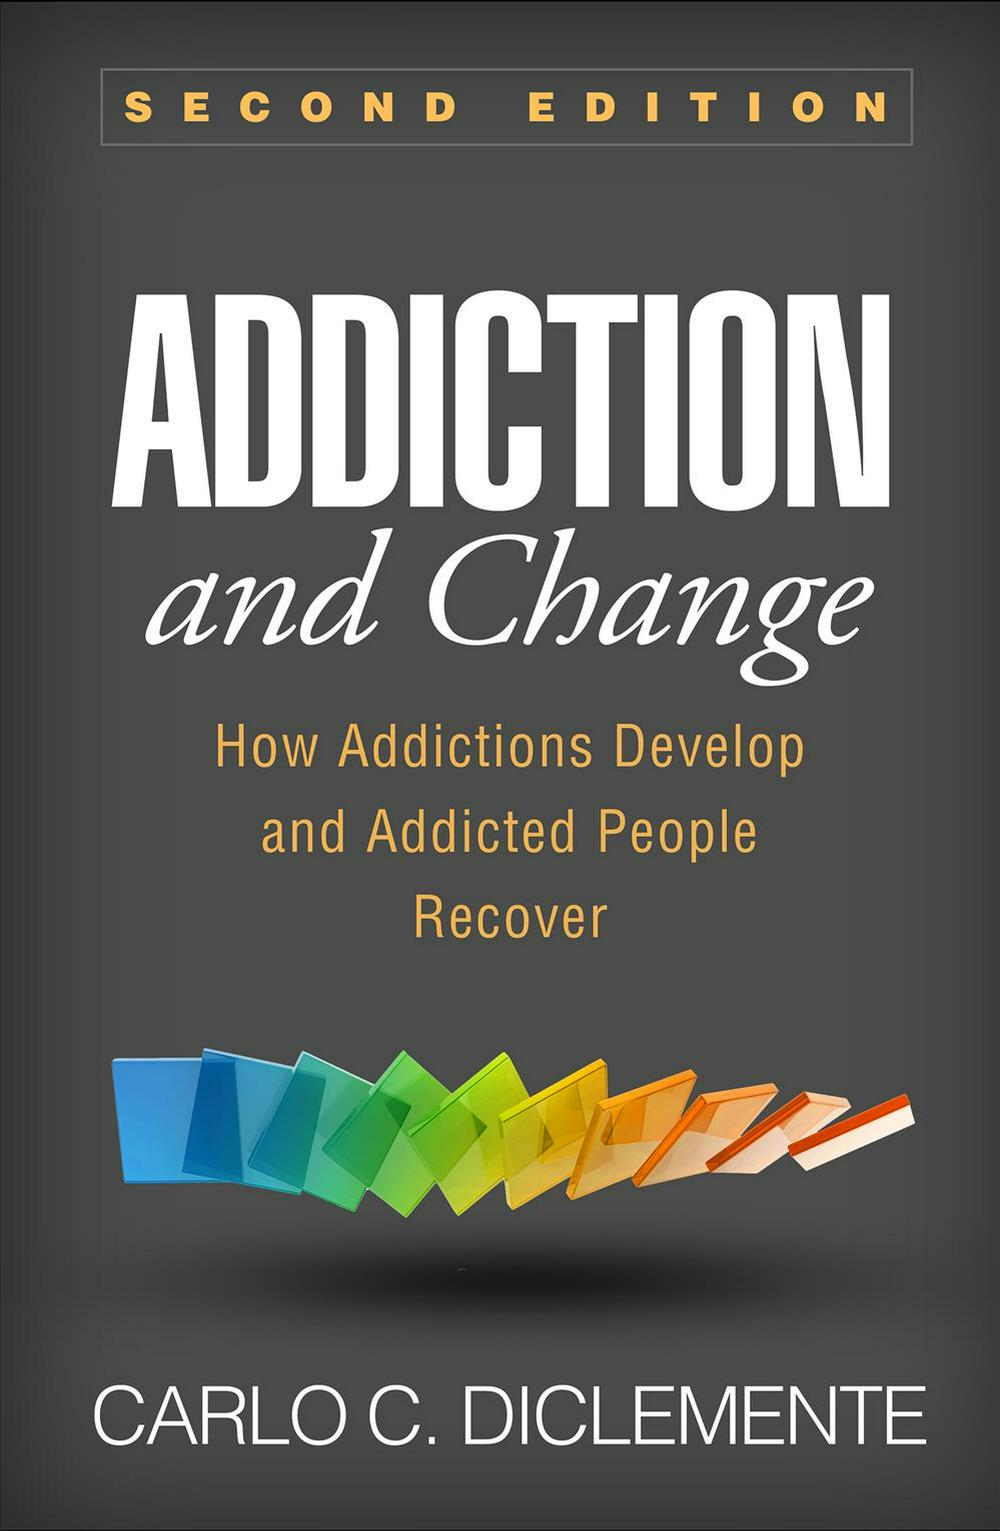 Addiction and Change, Second EditionHow Addictions Develop and Addicted People Recover